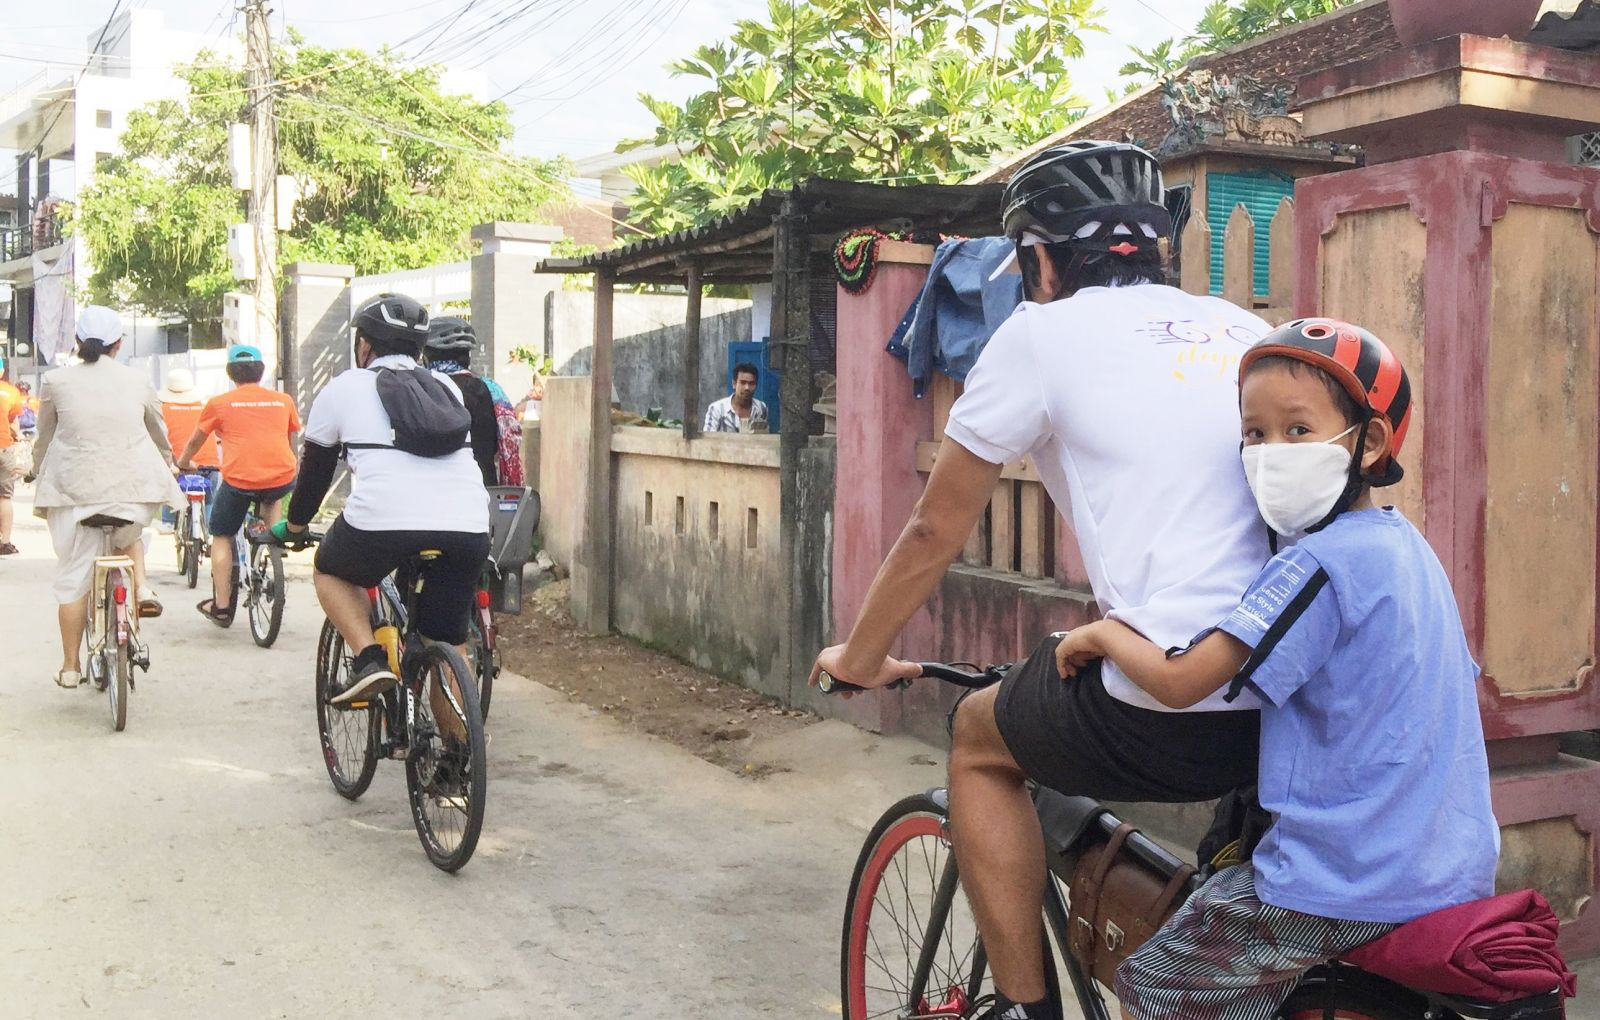 Although some children cannot cycle by themselves, they still go with their father in calling for environmental protection